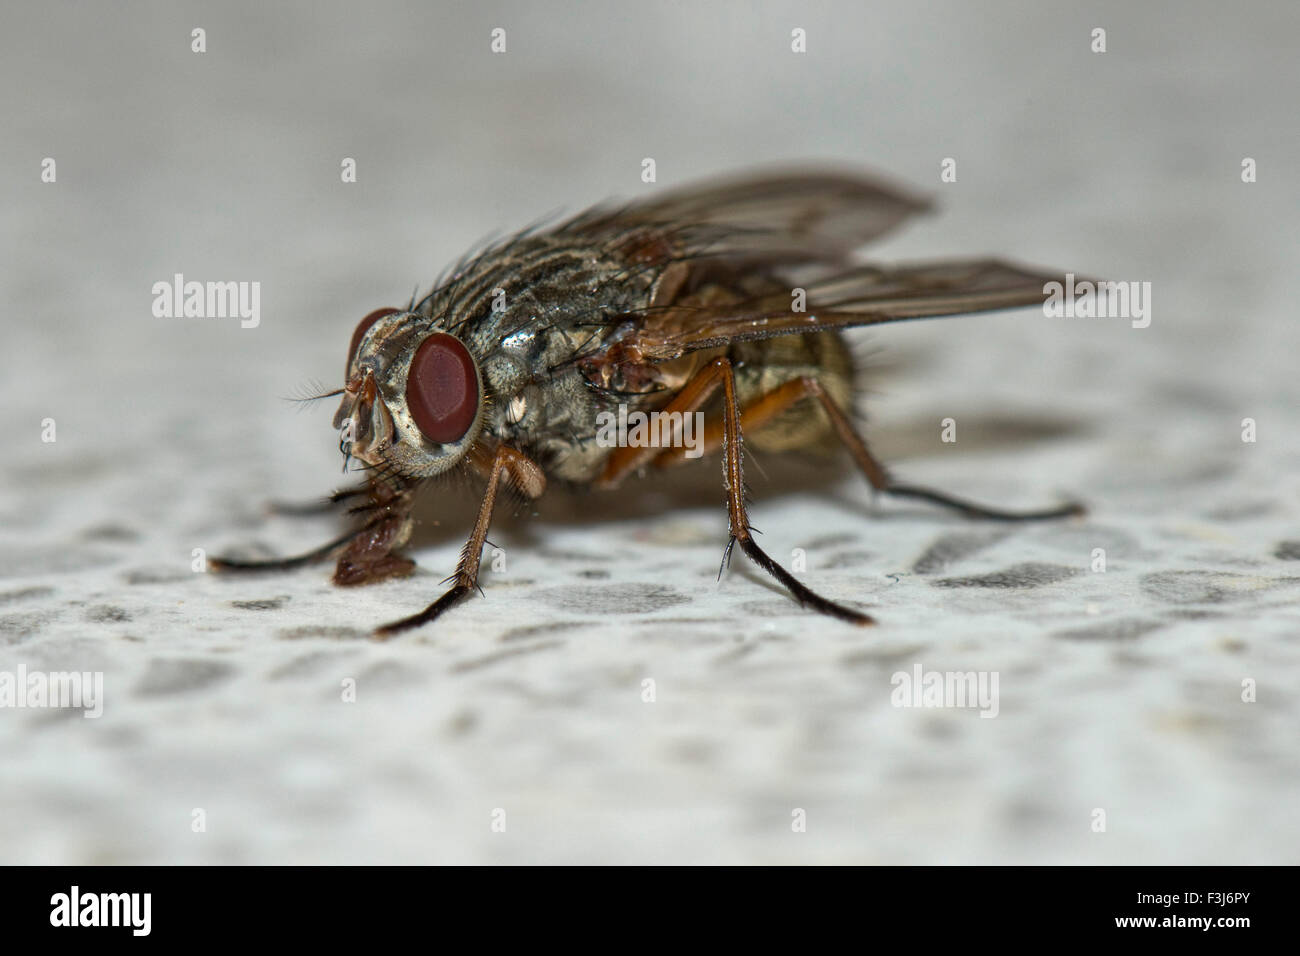 A housefly, Phaonia valida, using its labellum to feed from a kitchen work surface, UK - Stock Image